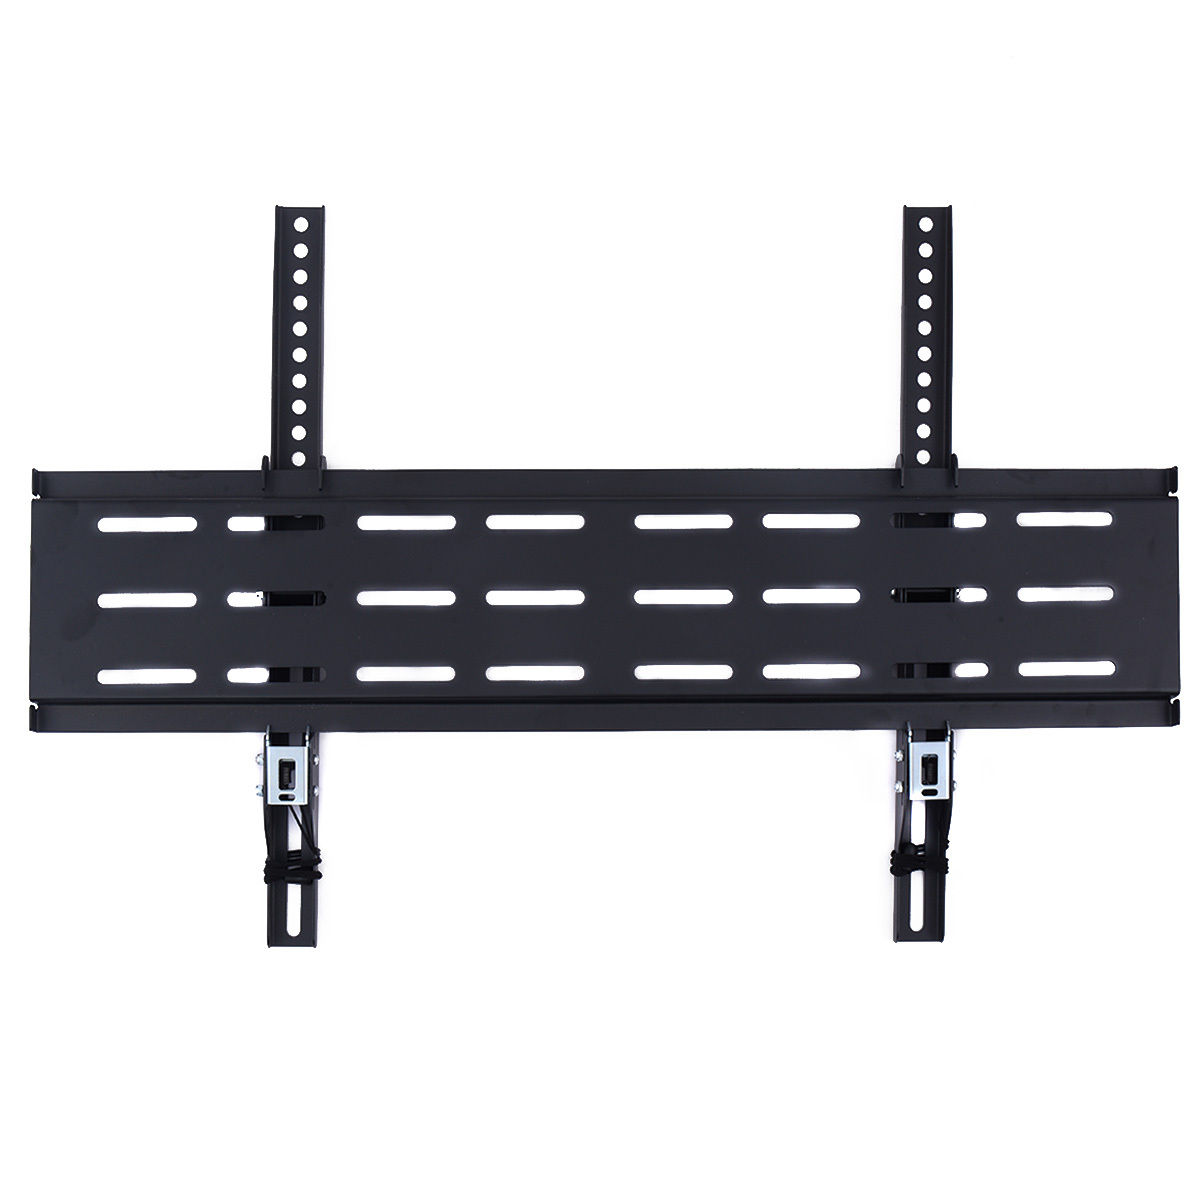 LCD LED Plasma Flat Tilt TV Wall Mount Bracket 37 40 42 46 47 50 52 55 60 65 70